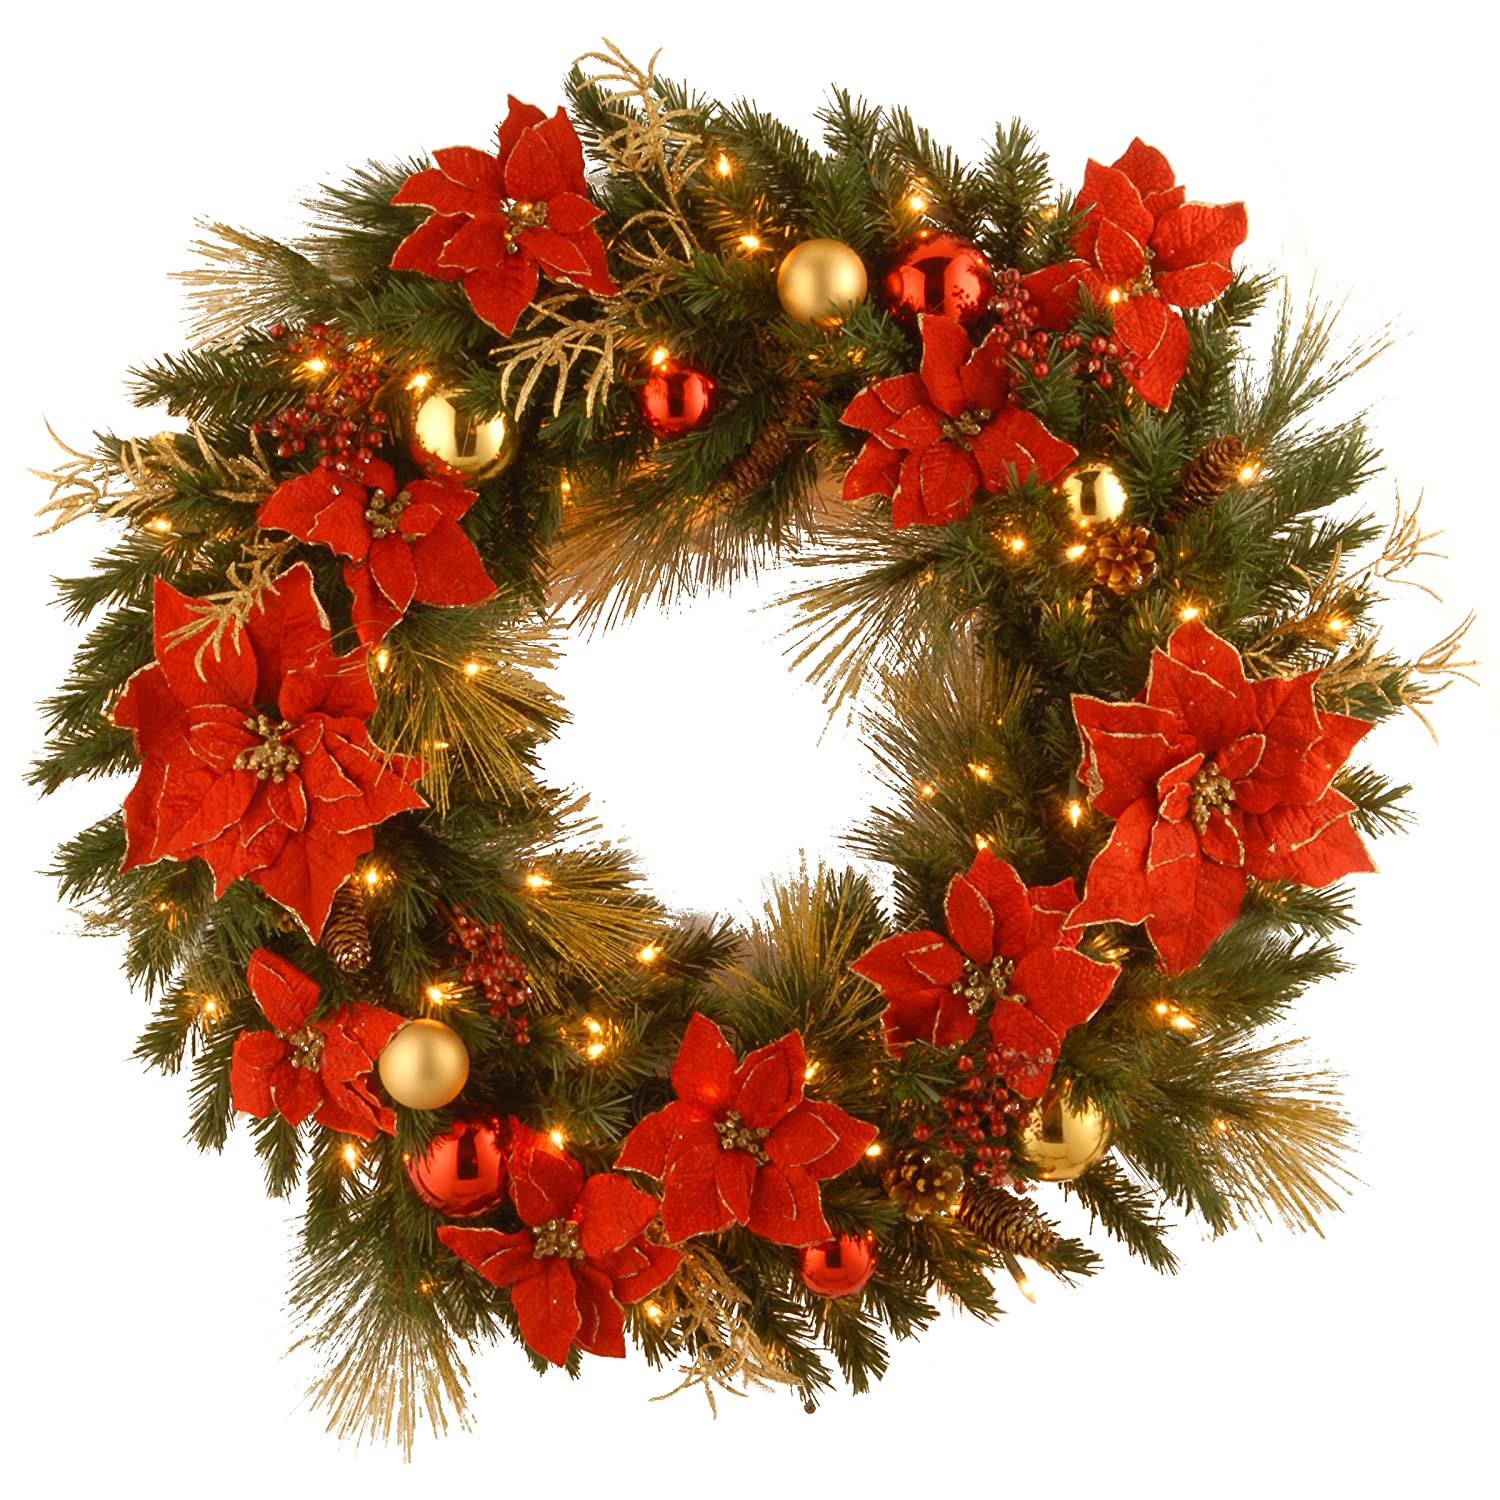 National Tree DC13-111L-36W 36-Inch Decorative Collection Home Spun Wreath with 100 Clear Lights